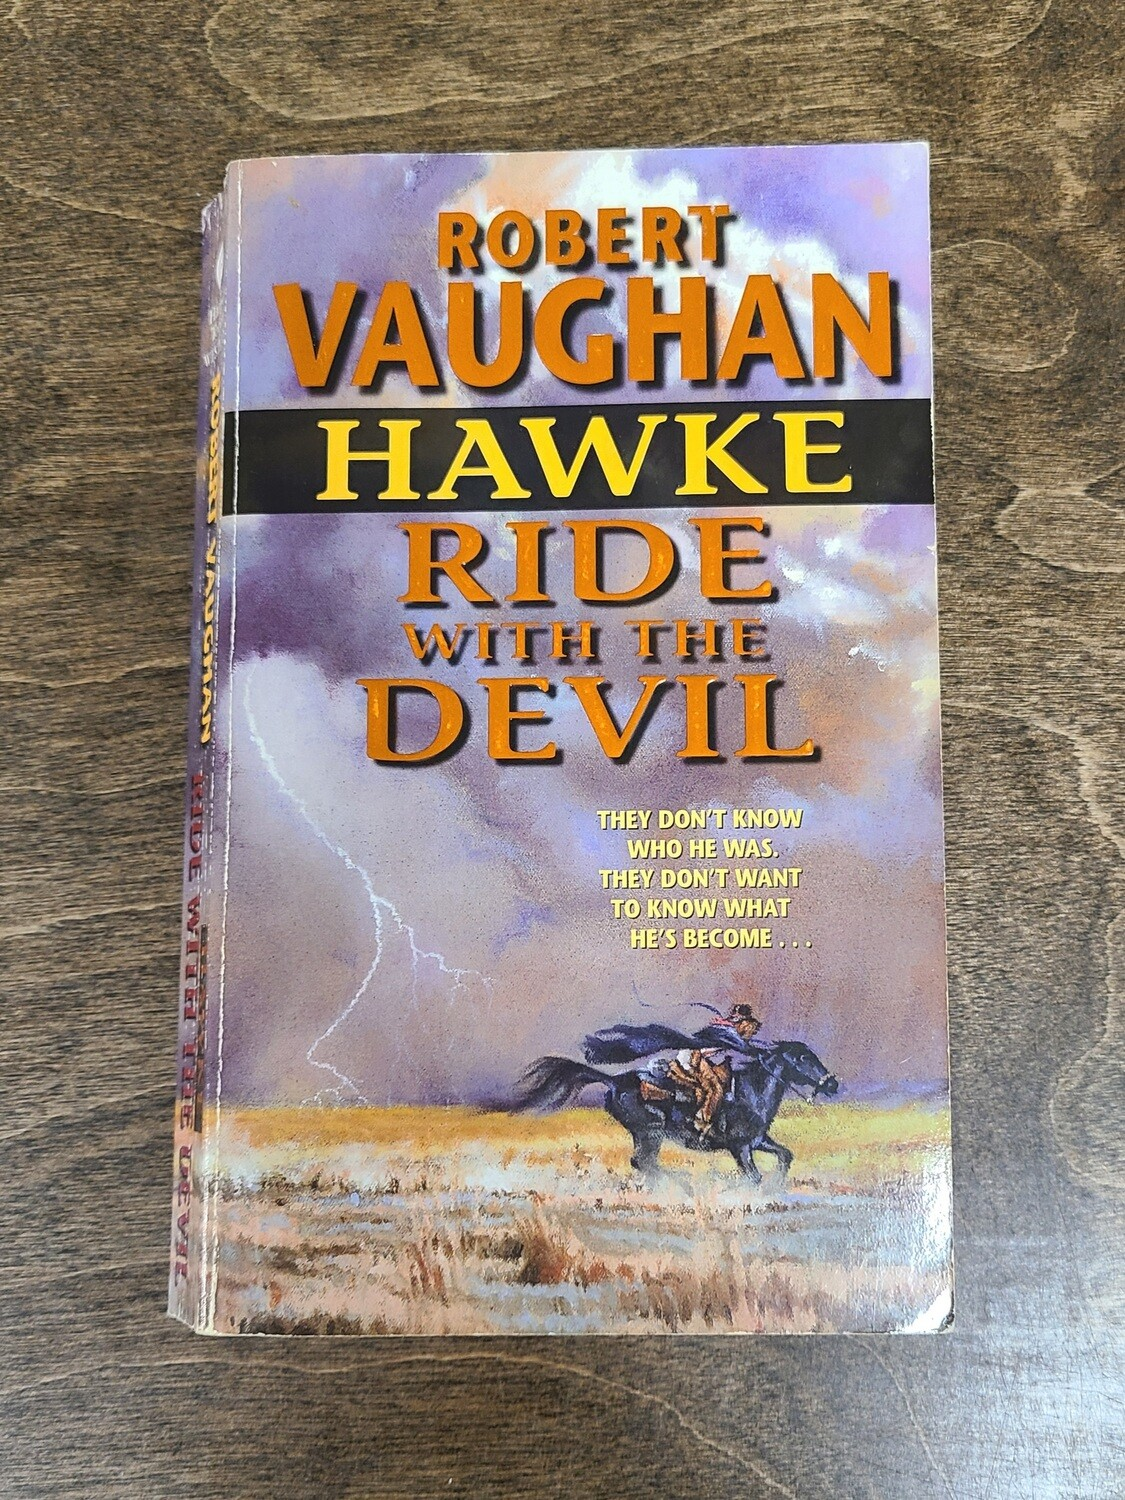 Hawke: Ride with the Devil by Robert Vaughan